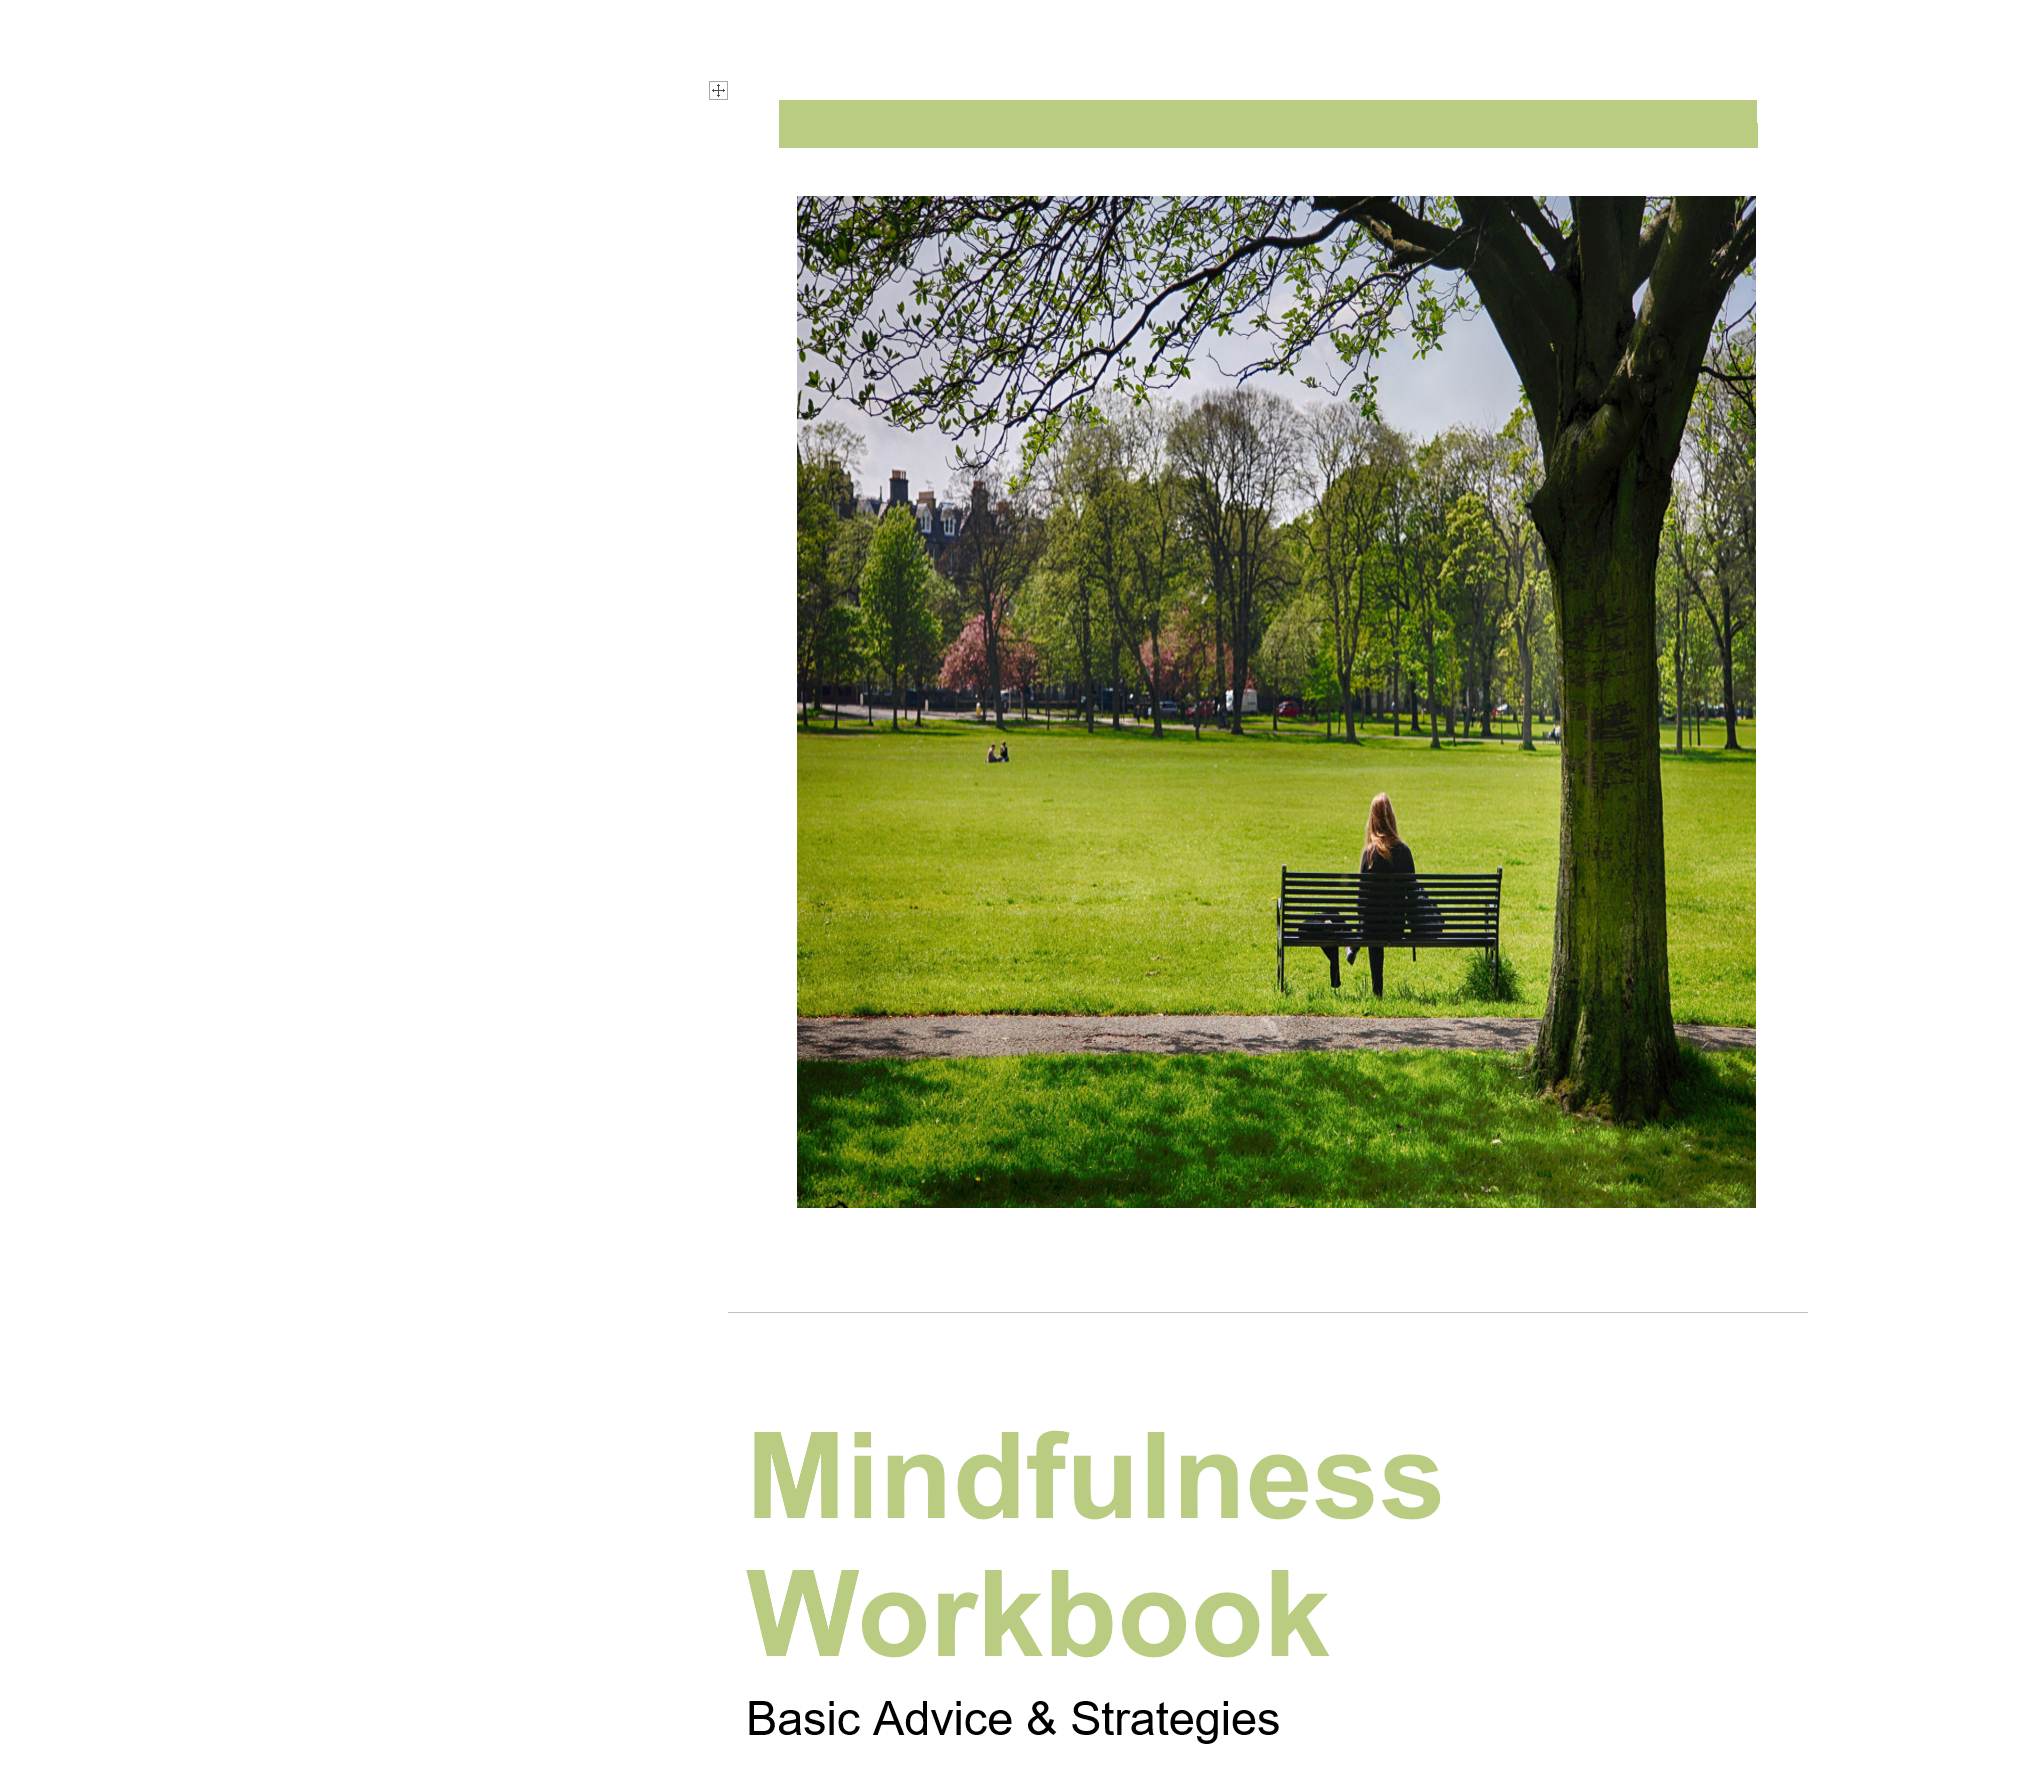 Mindfulness Workbook Cover